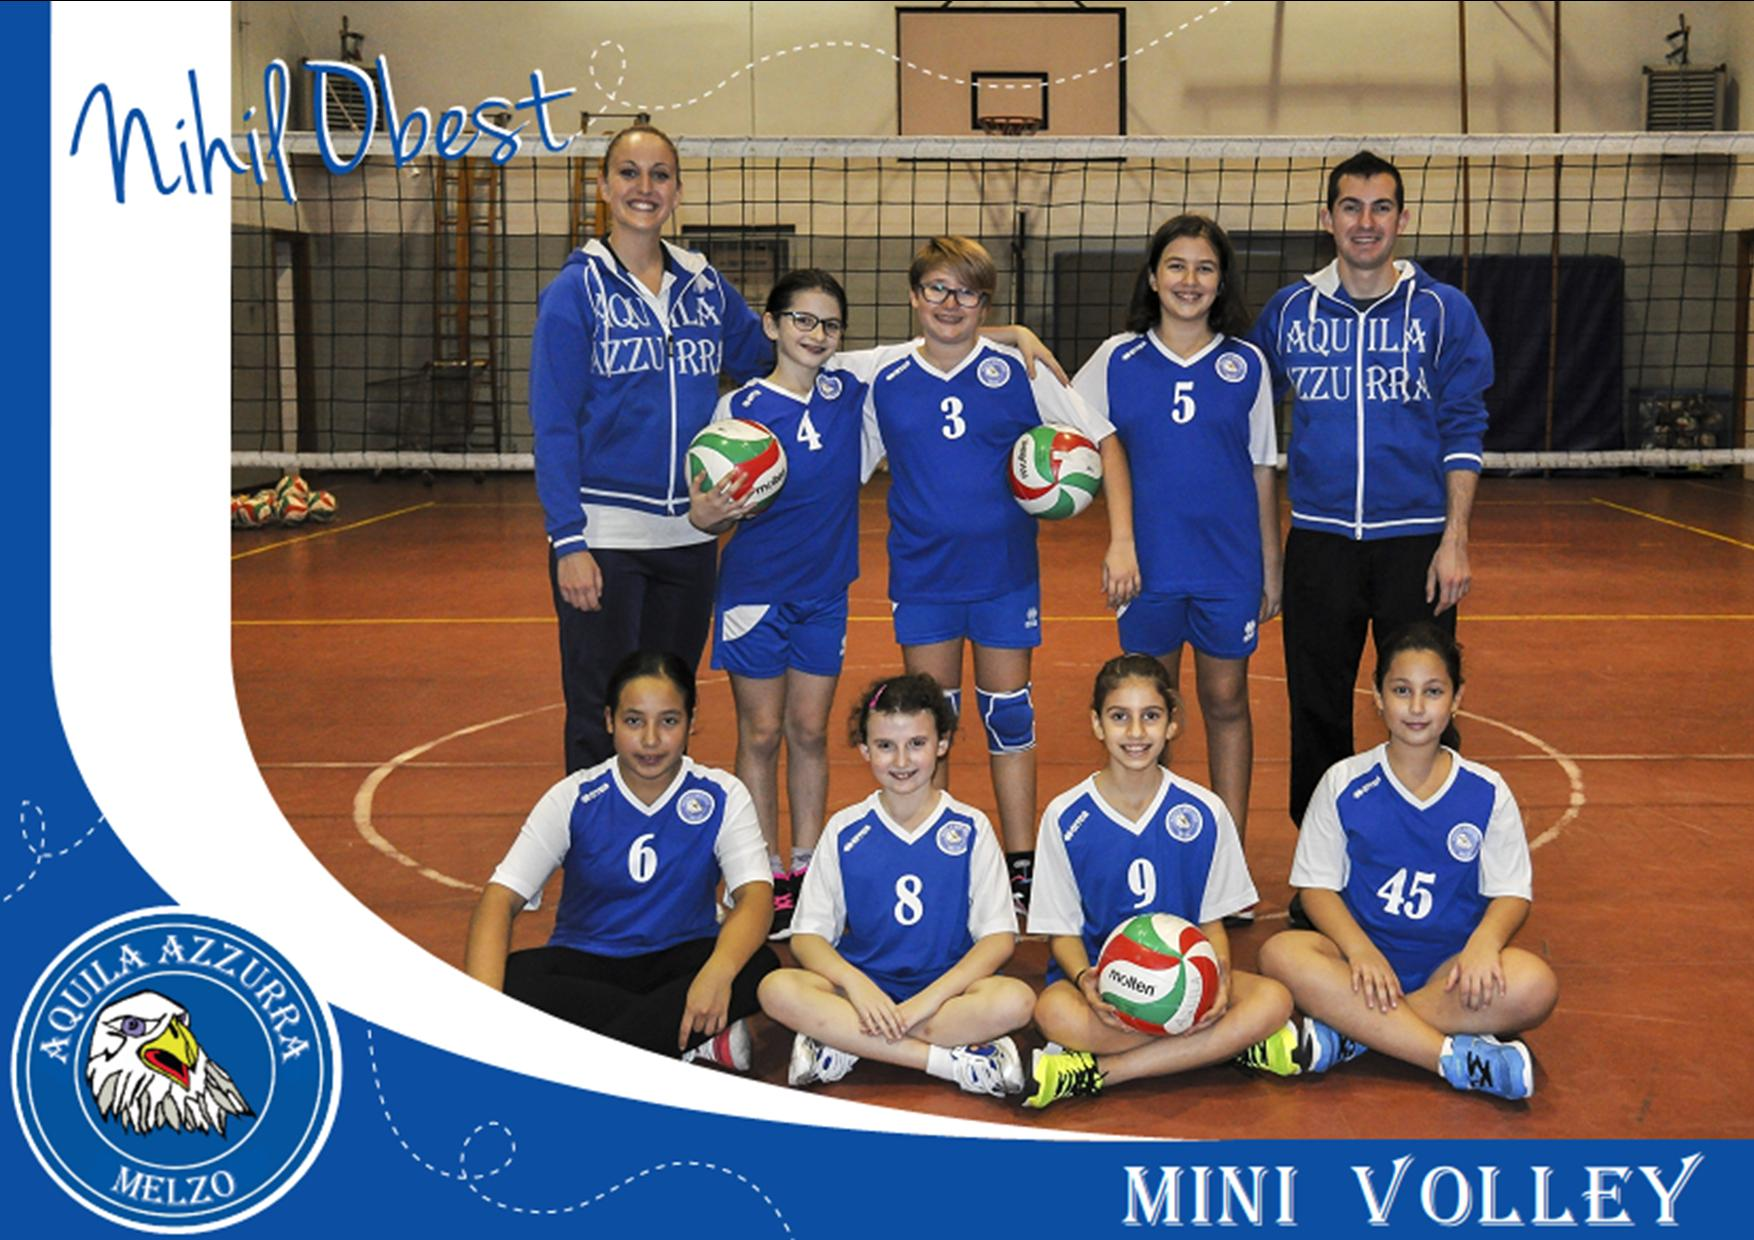 MINI VOLLEY 2015